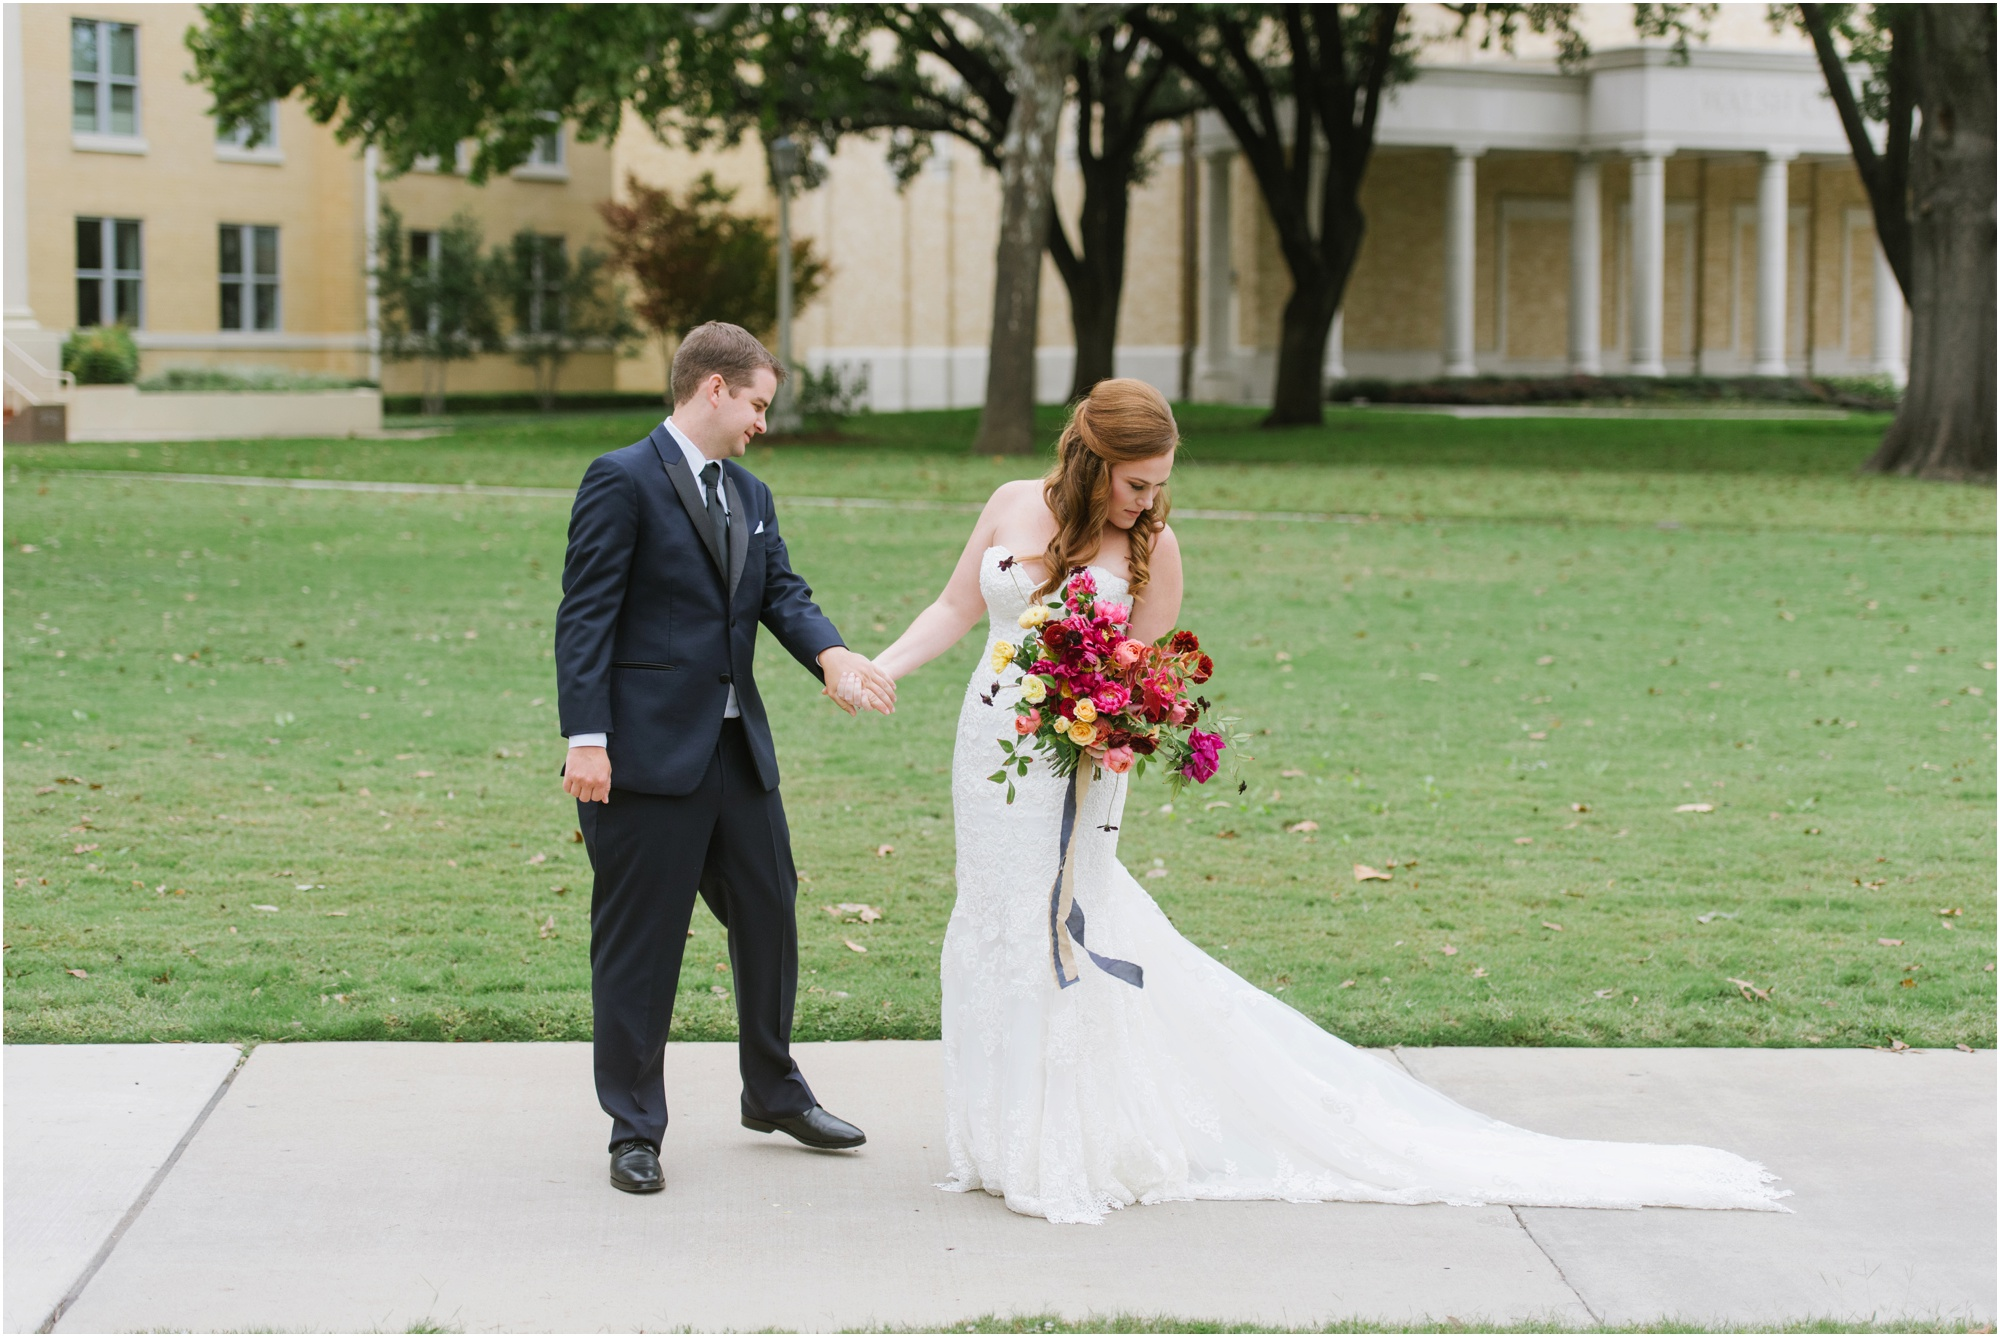 dallasweddingphotographer_mattandjulieweddings_fortworthweddingphotographer_0185.jpg